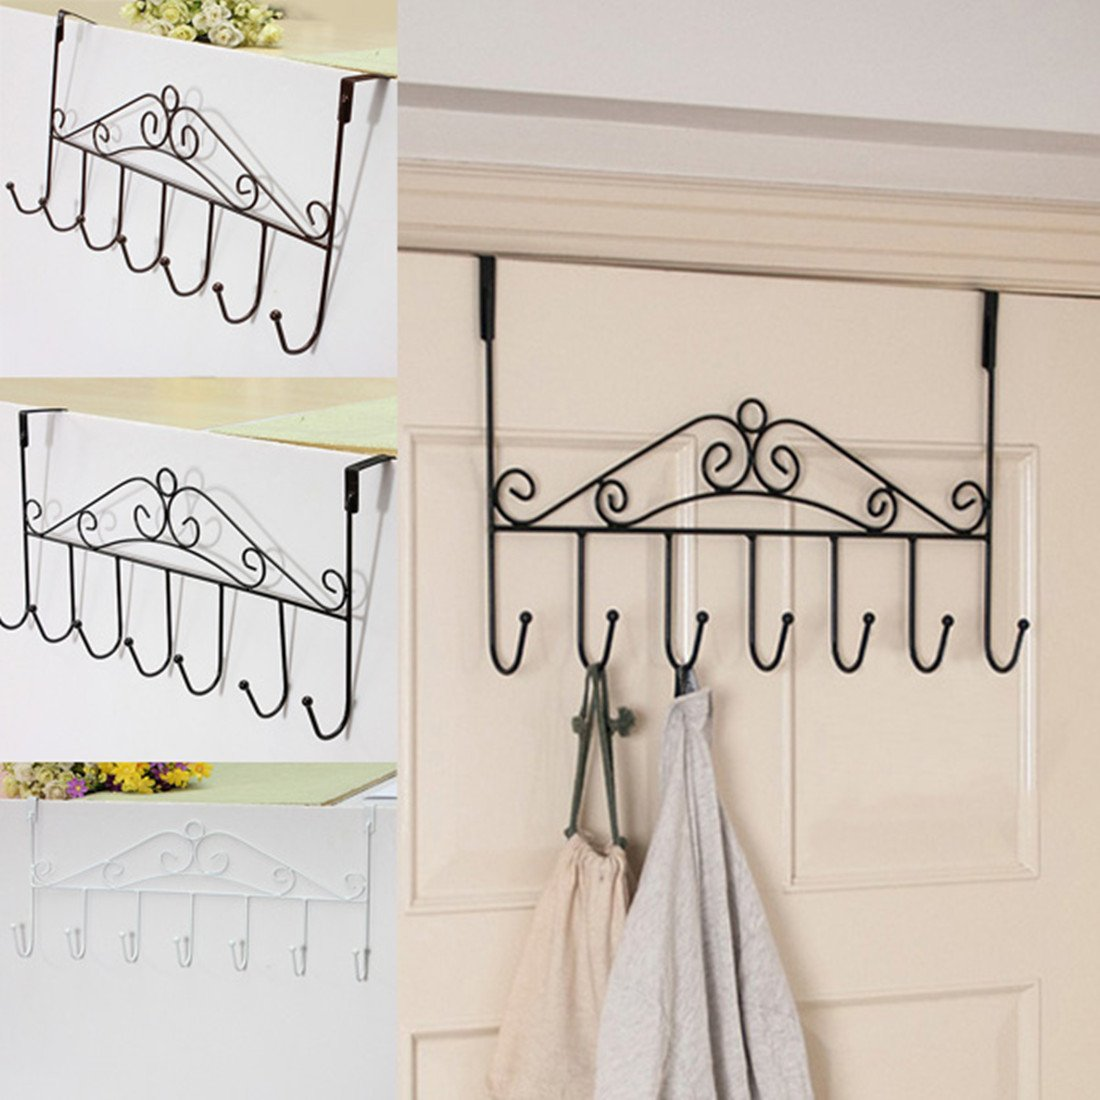 EWS 7 Hanger White Towel Hat Coat Clothes Wall Hook Over Door Bathroom fixmee 50pcs white plastic invisible wall mount photo picture frame nail hook hanger